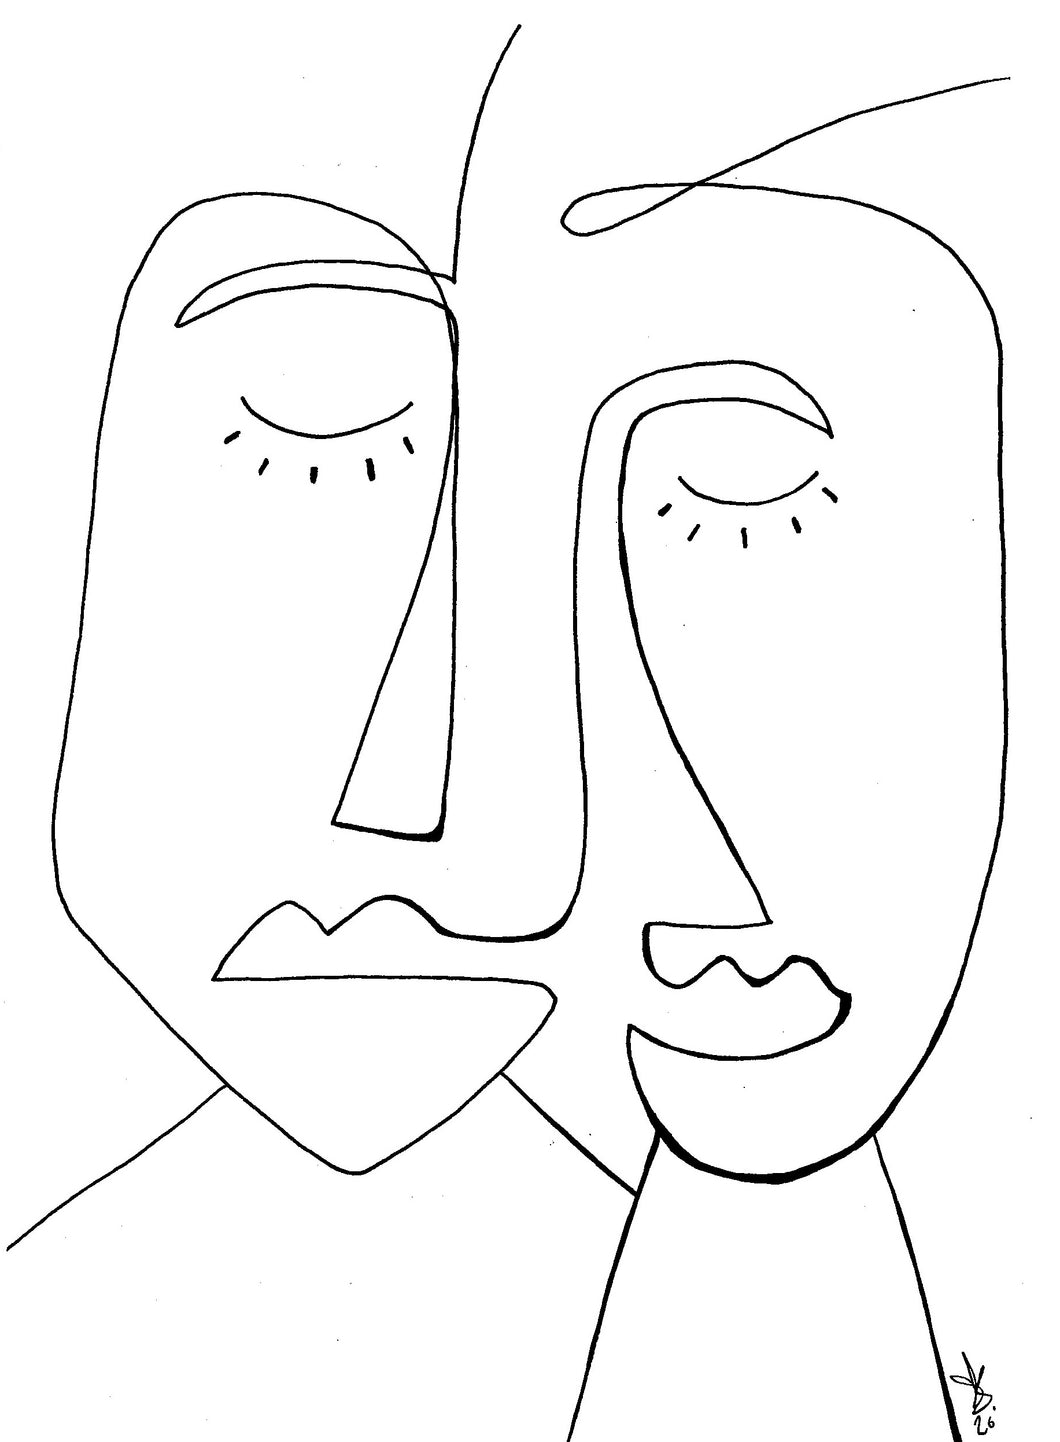 Line drawing - A man and a woman